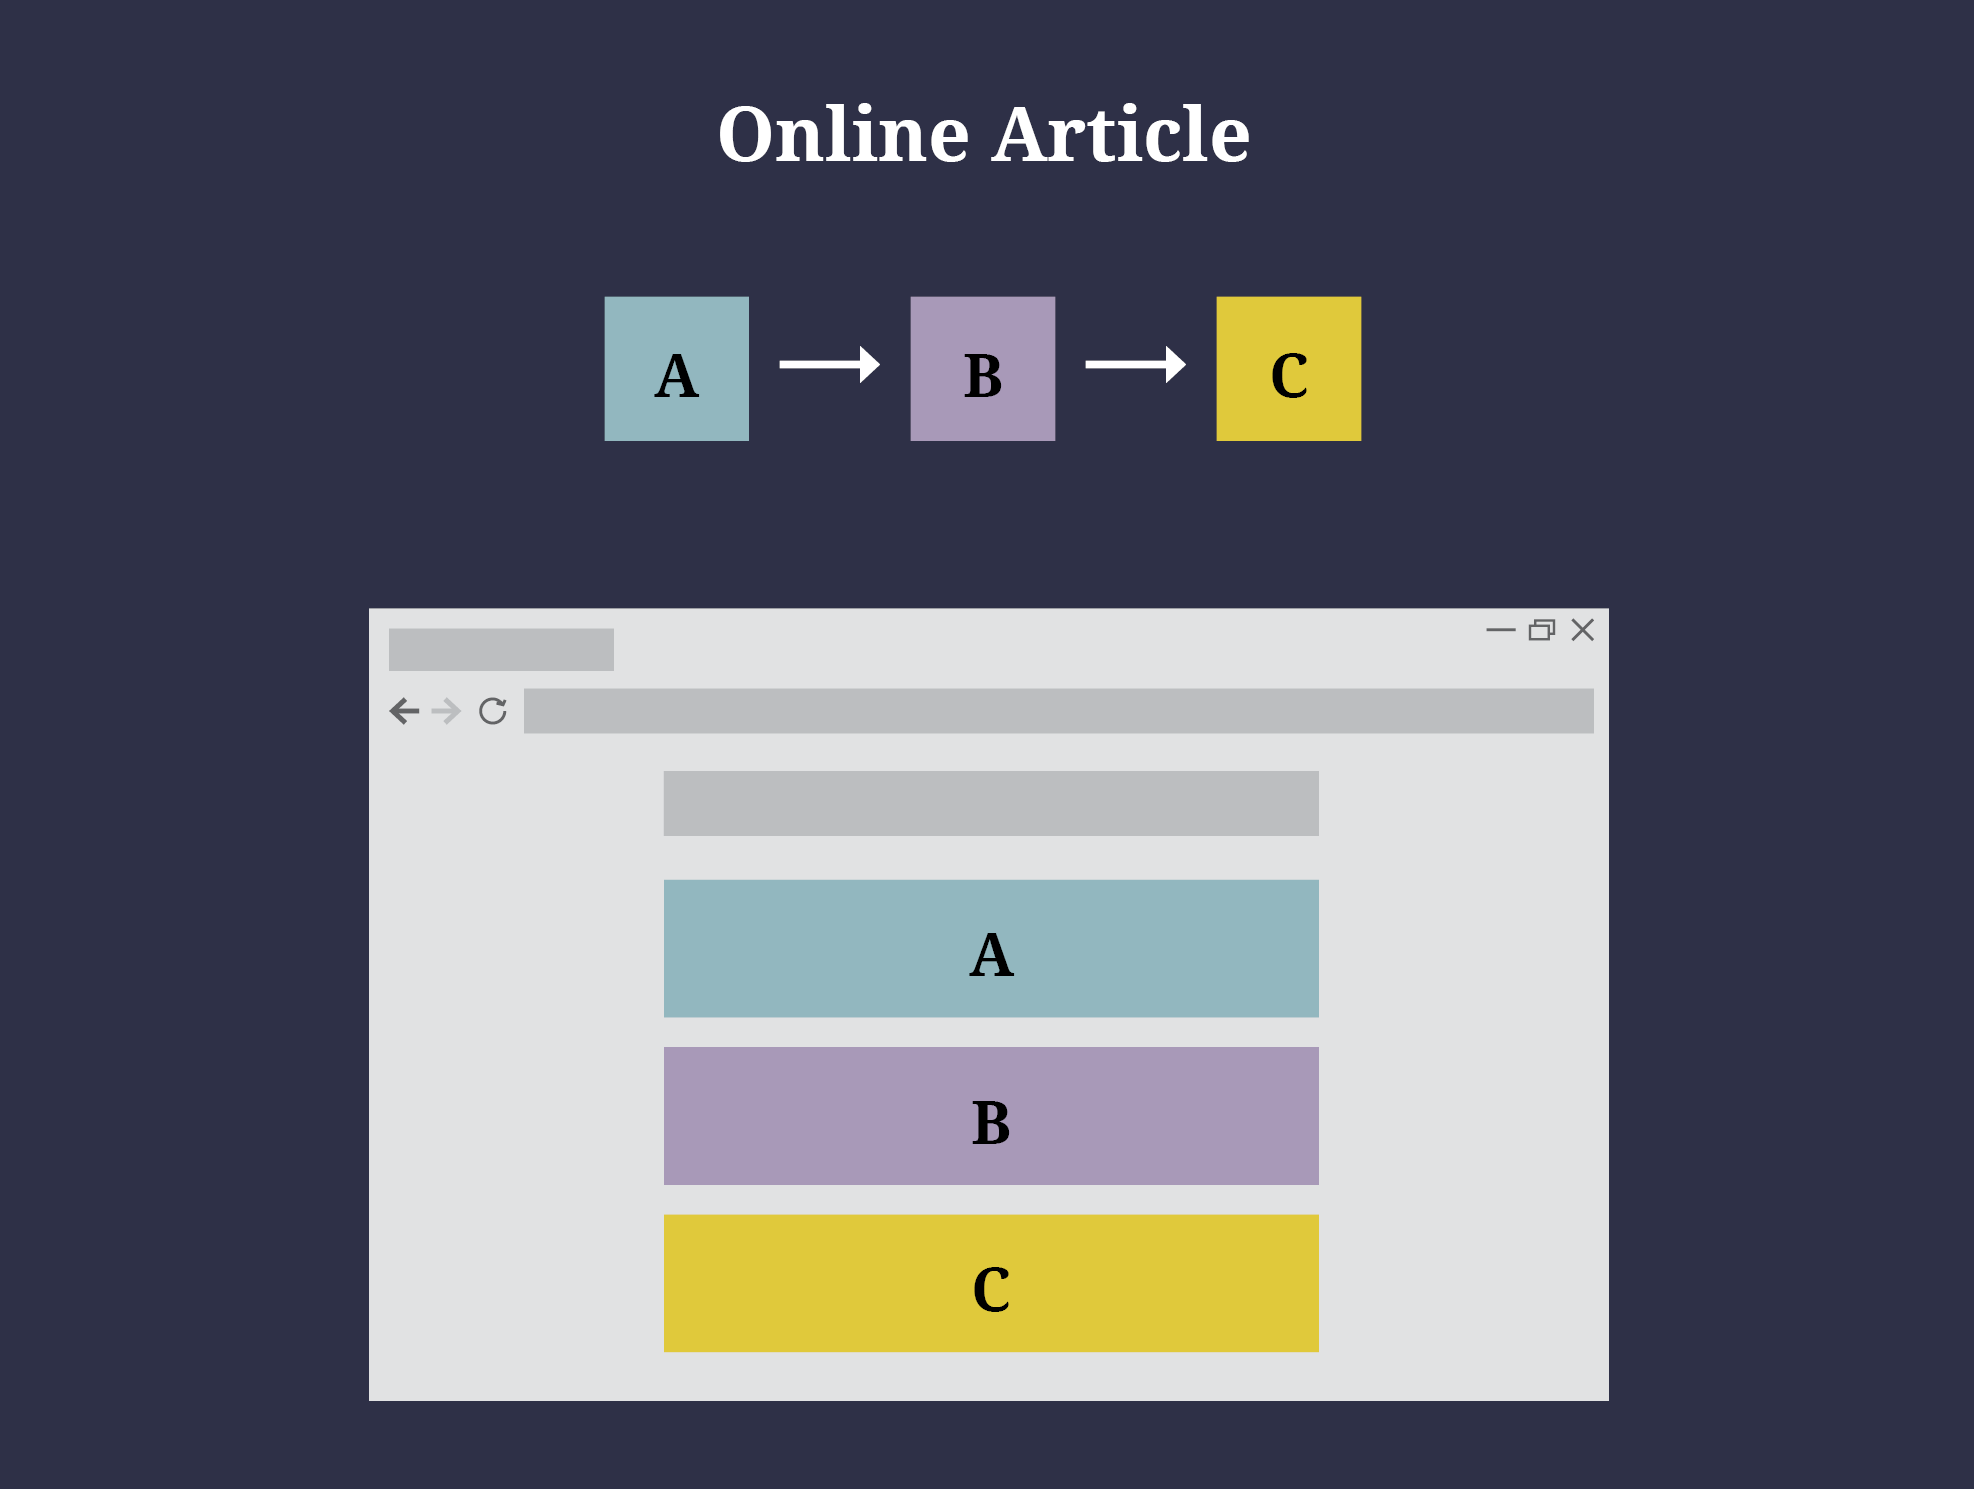 Online article communicates information from A to B to C